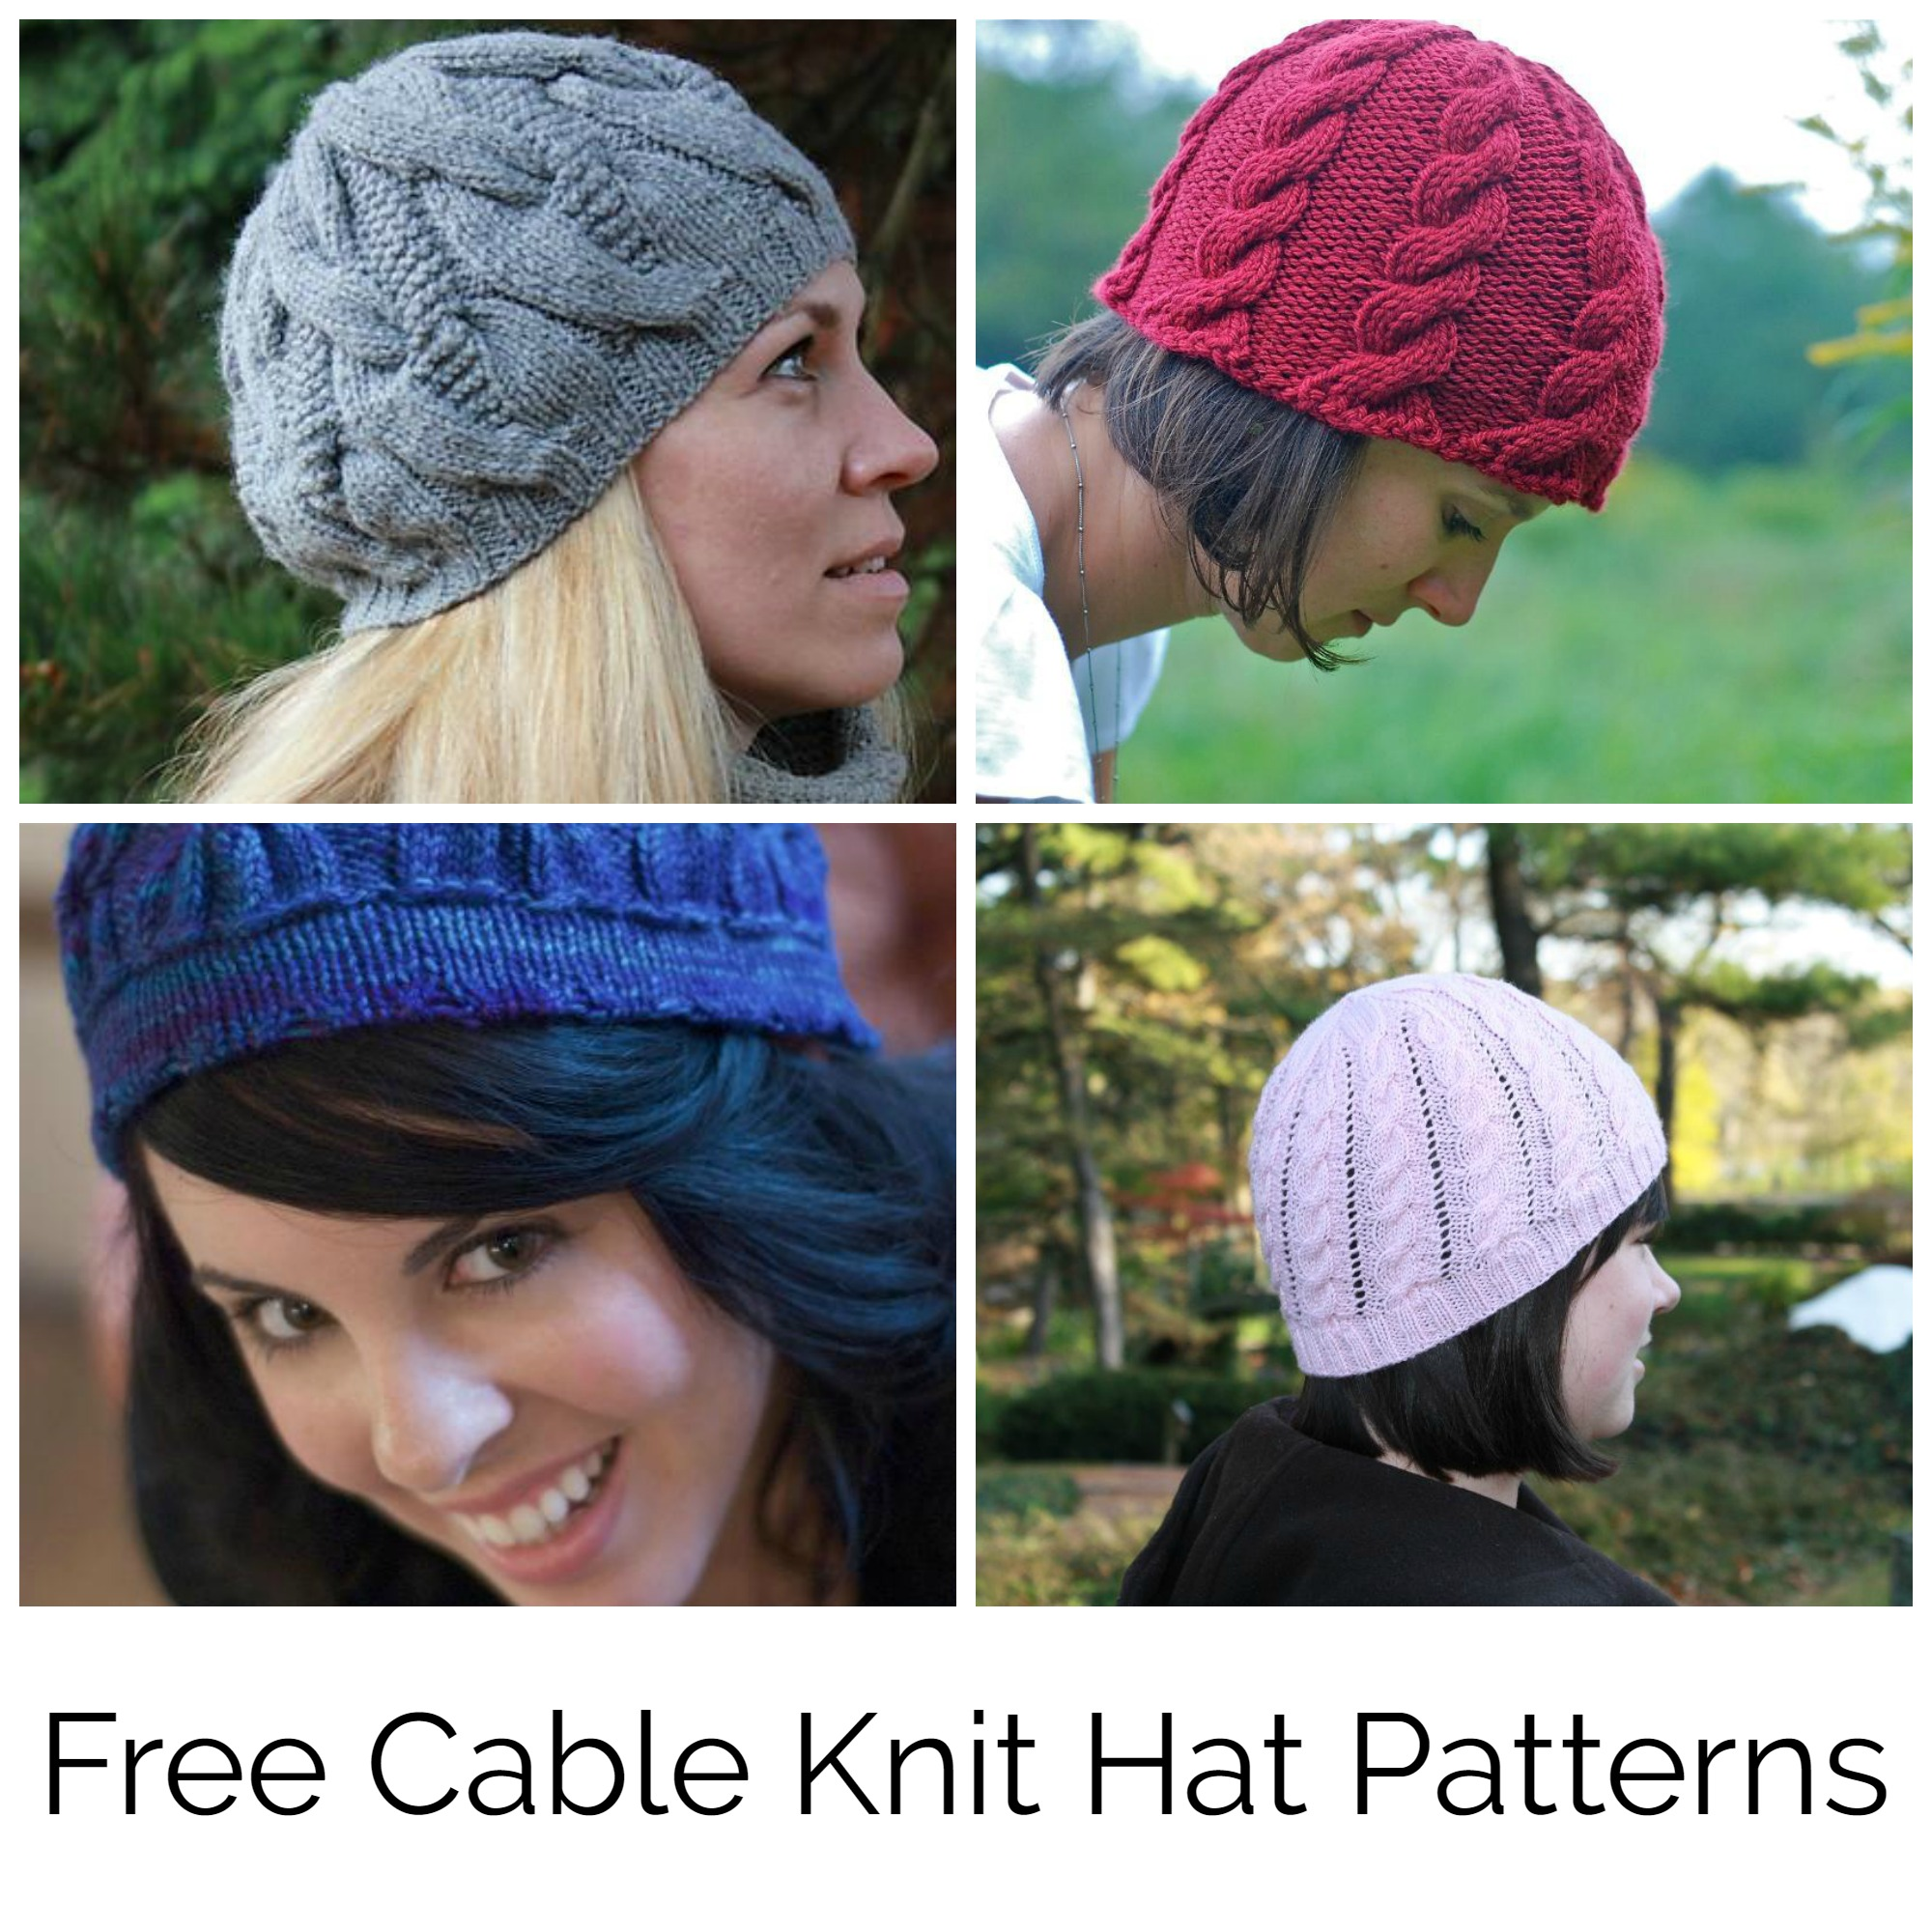 Free Cable Knit Hat Patterns